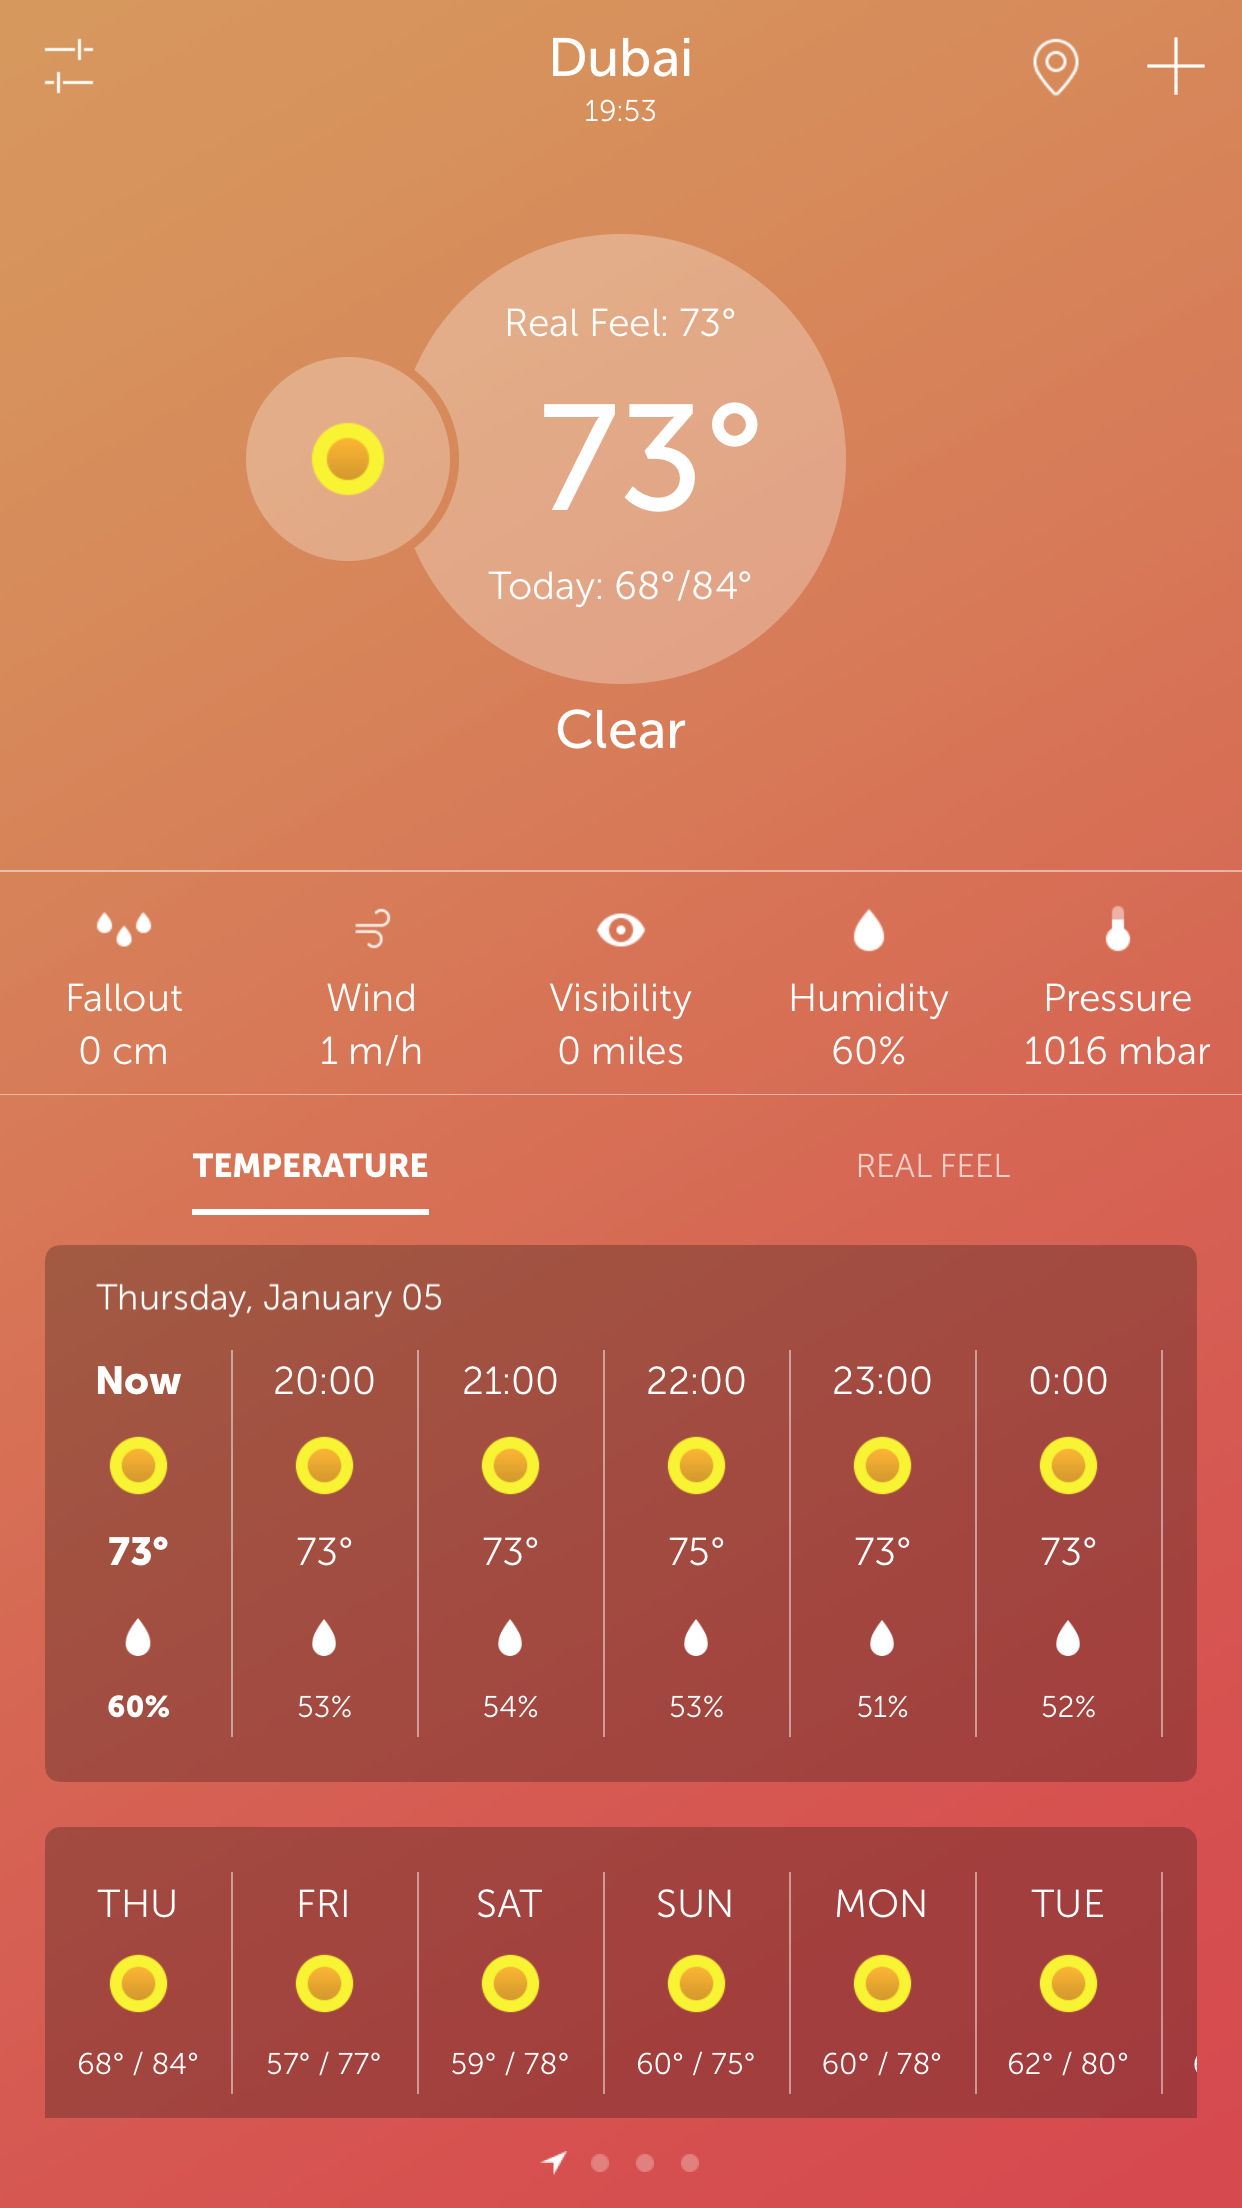 UltraWeather released - New reliable and stylish Weather Forecast App Image